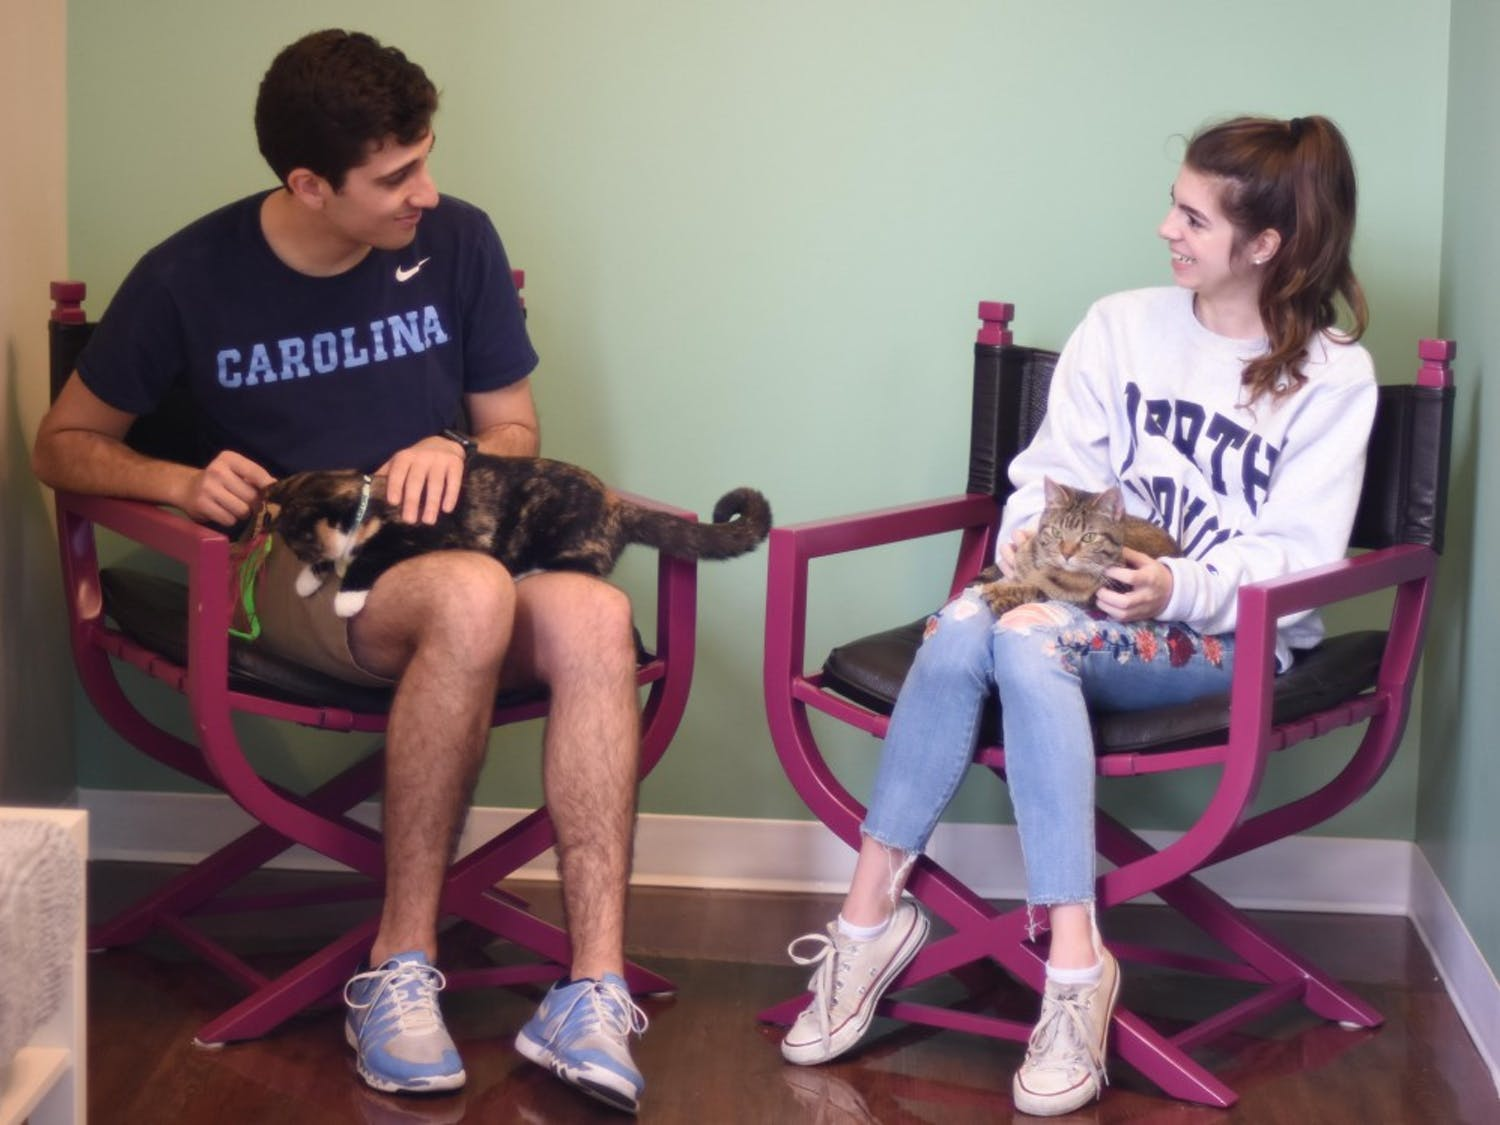 Adam Jordan and Ashley Mills, both juniors in the School of Media and Journalism, petting two of the twelve cats at Cat Tales Cat Cafe on Friday, Feb. 15, 2019. The cafe creates a low stress place for adoptable cats and cat lovers to meet and socialize.